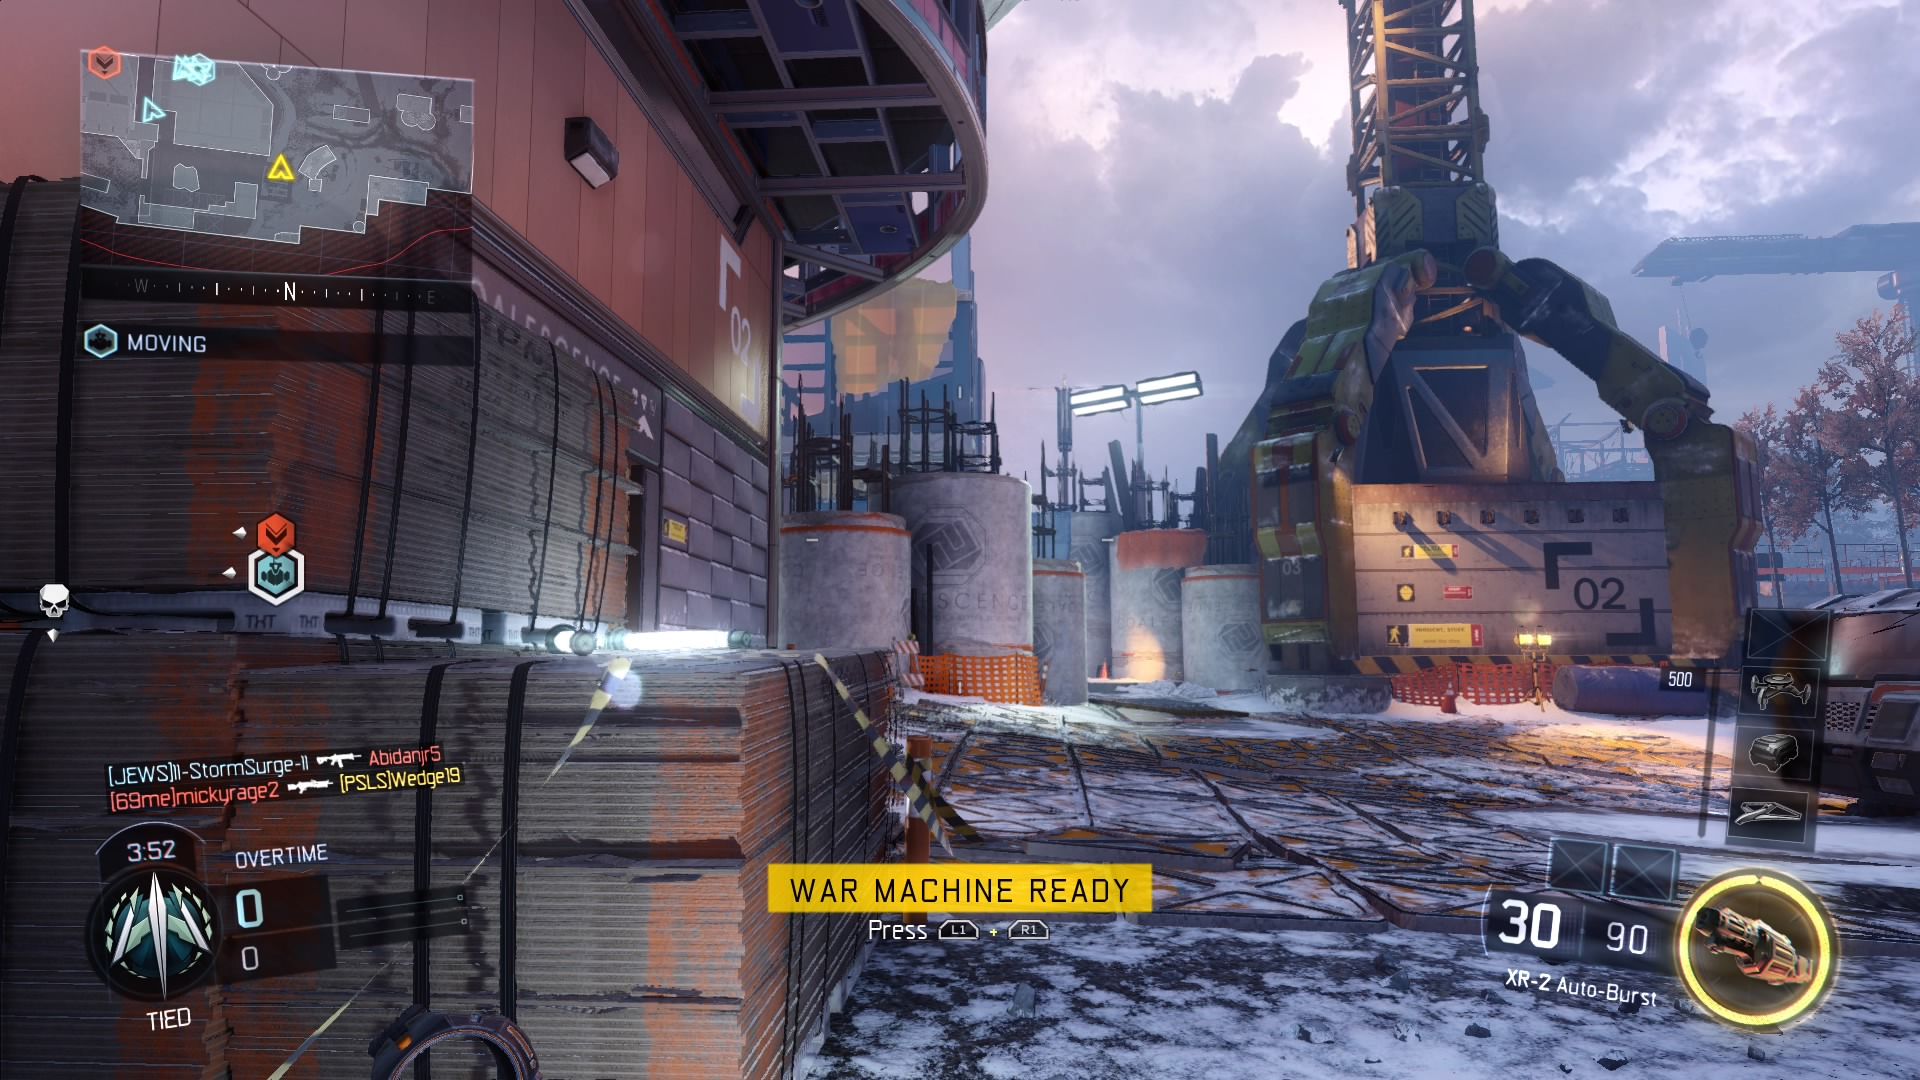 Call of Duty Black Ops 3 Dlc 1 Free Until End of August